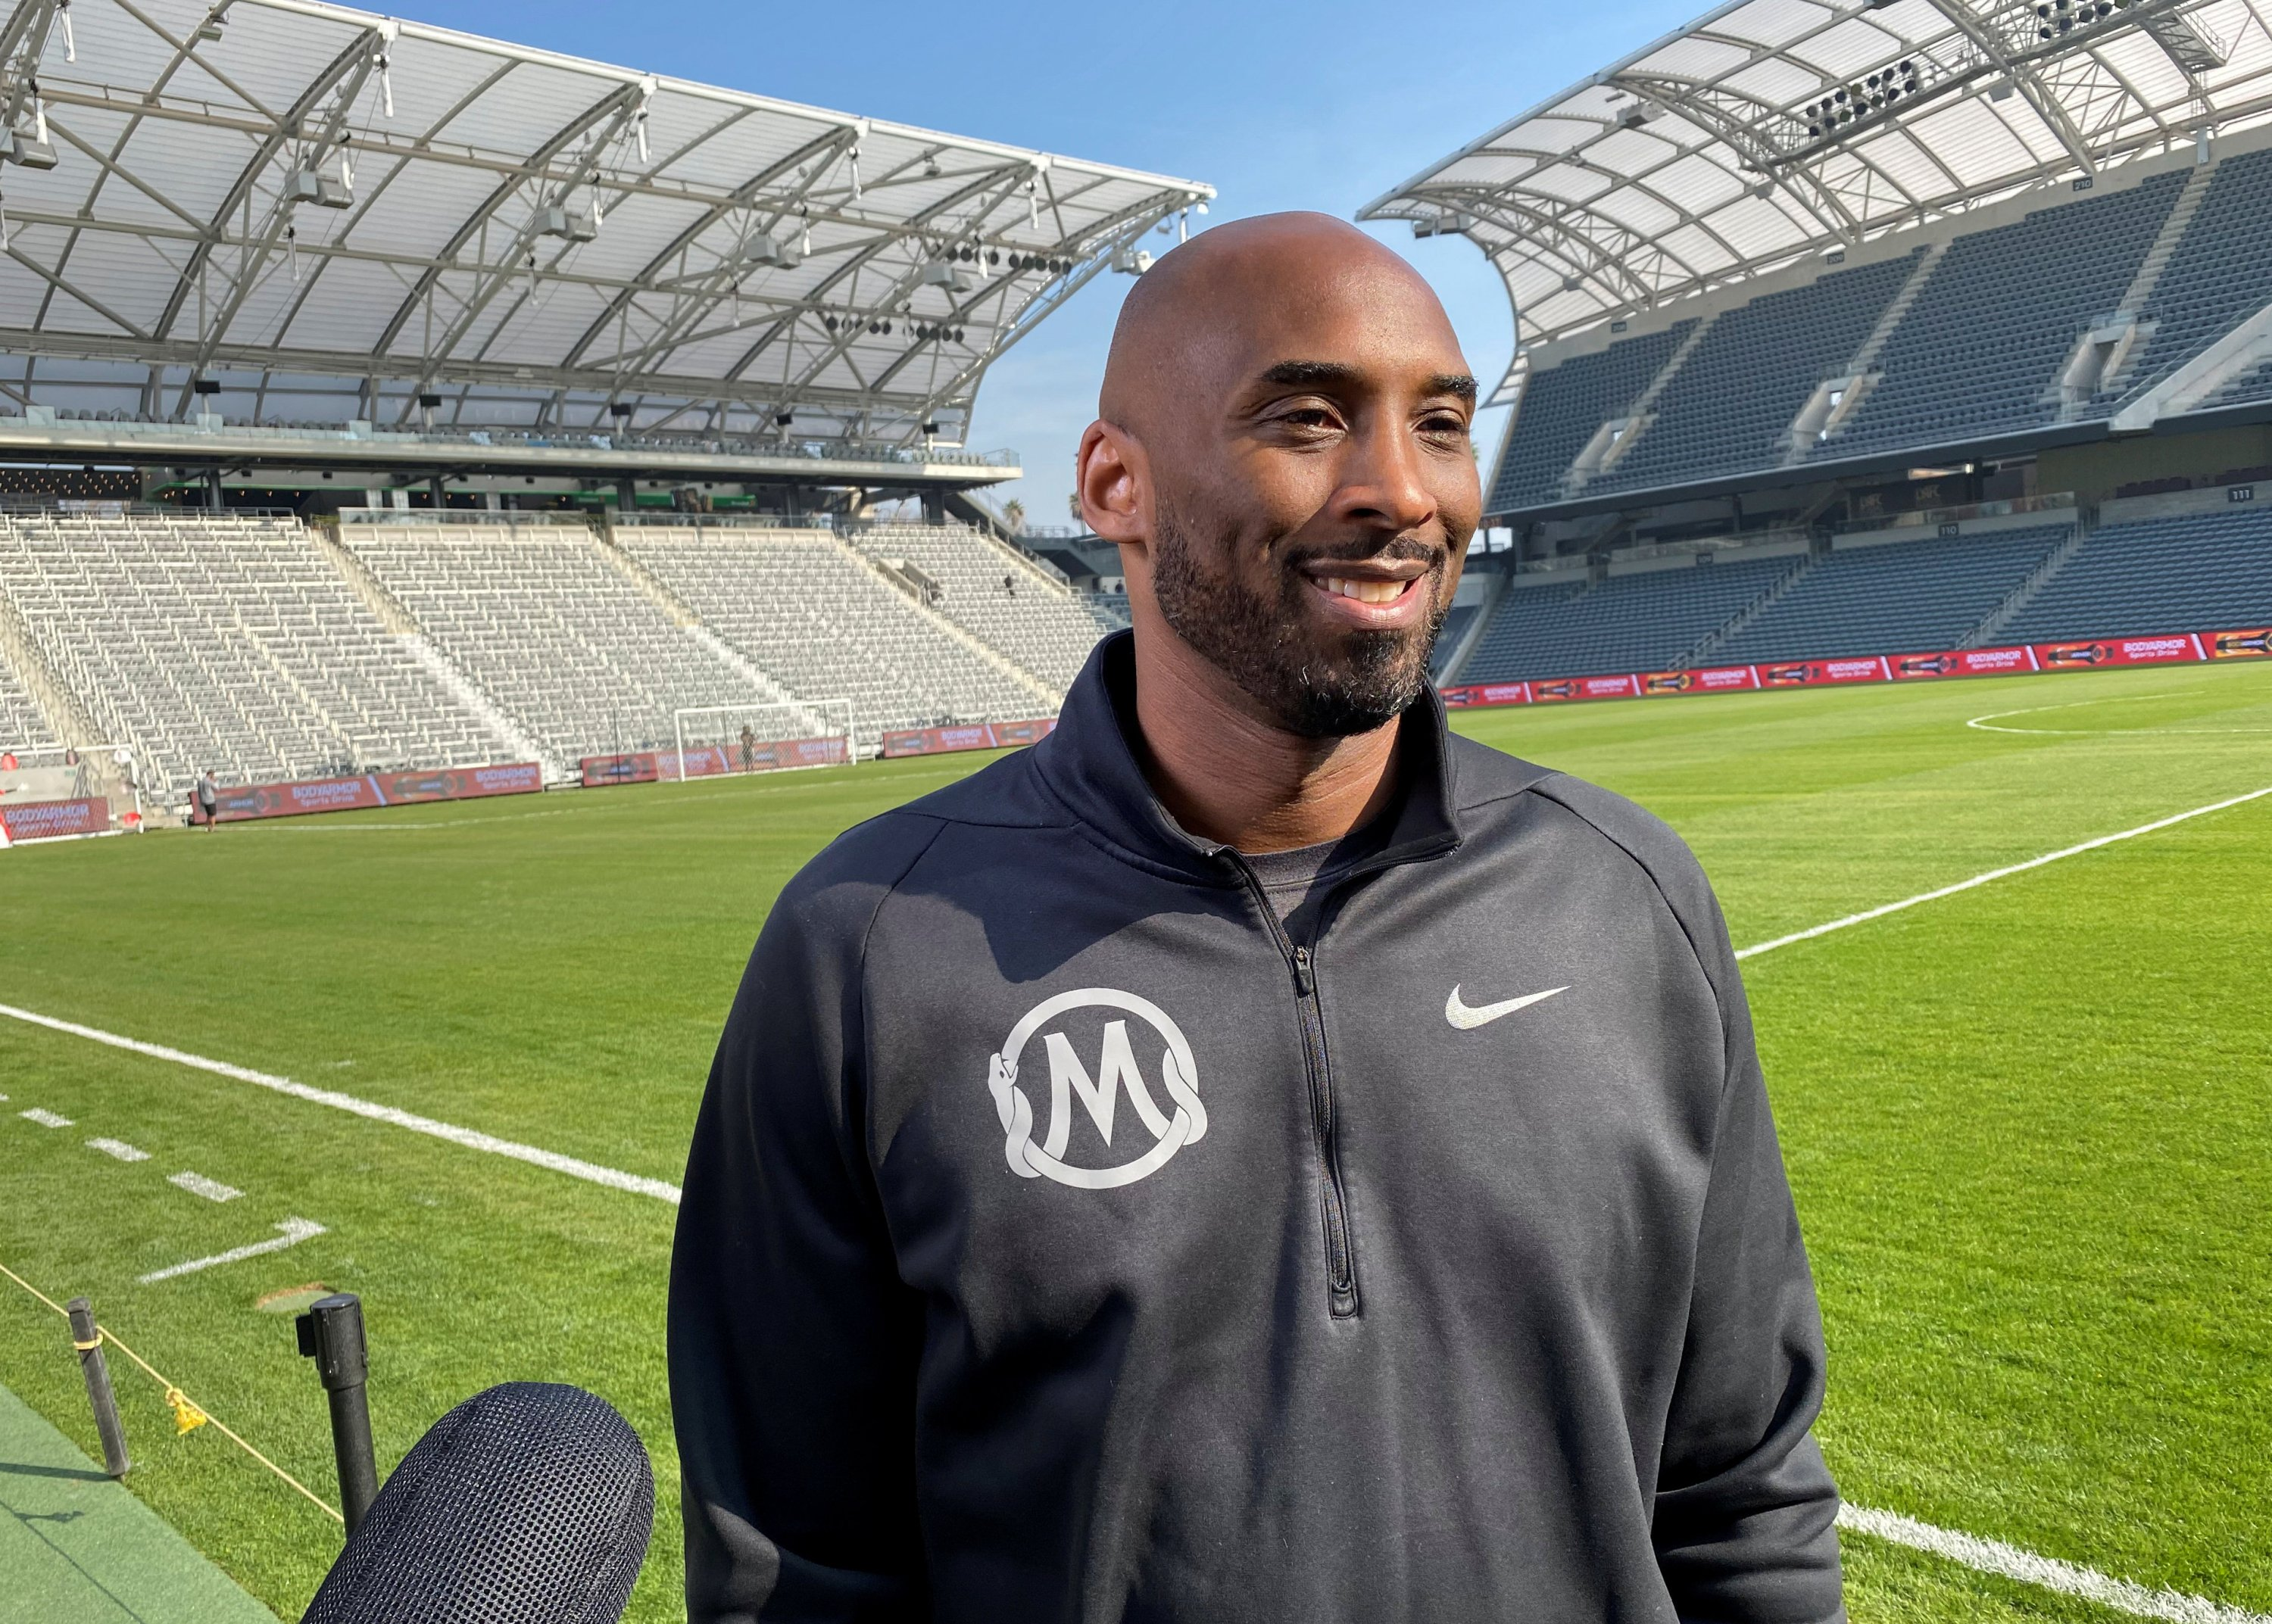 Former Los Angeles Lakers guard Kobe Bryant speaks to reporters at a Major League Soccer event in downtown Los Angeles, California, U.S., Jan. 15, 2020. (Reuters Photo)